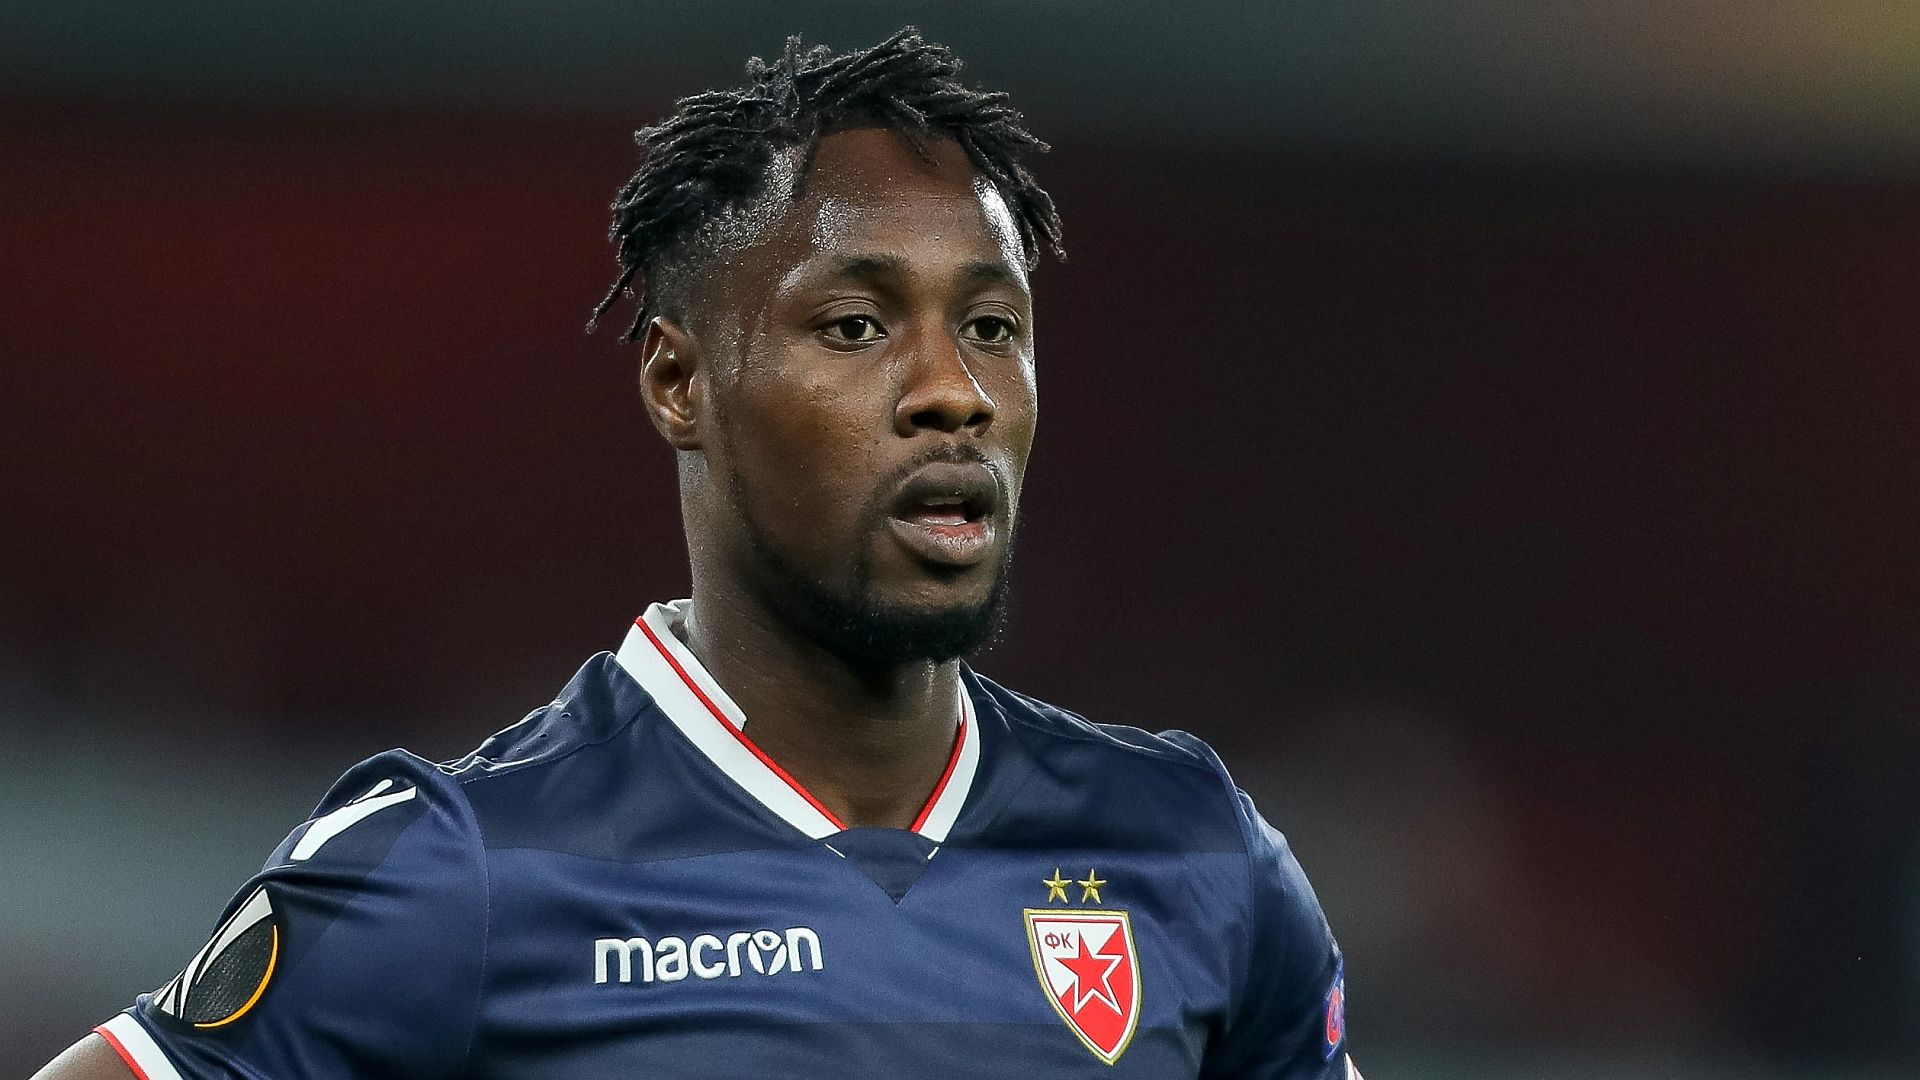 Champions League: Red Star Belgrade 'ready for very difficult group' - Boakye